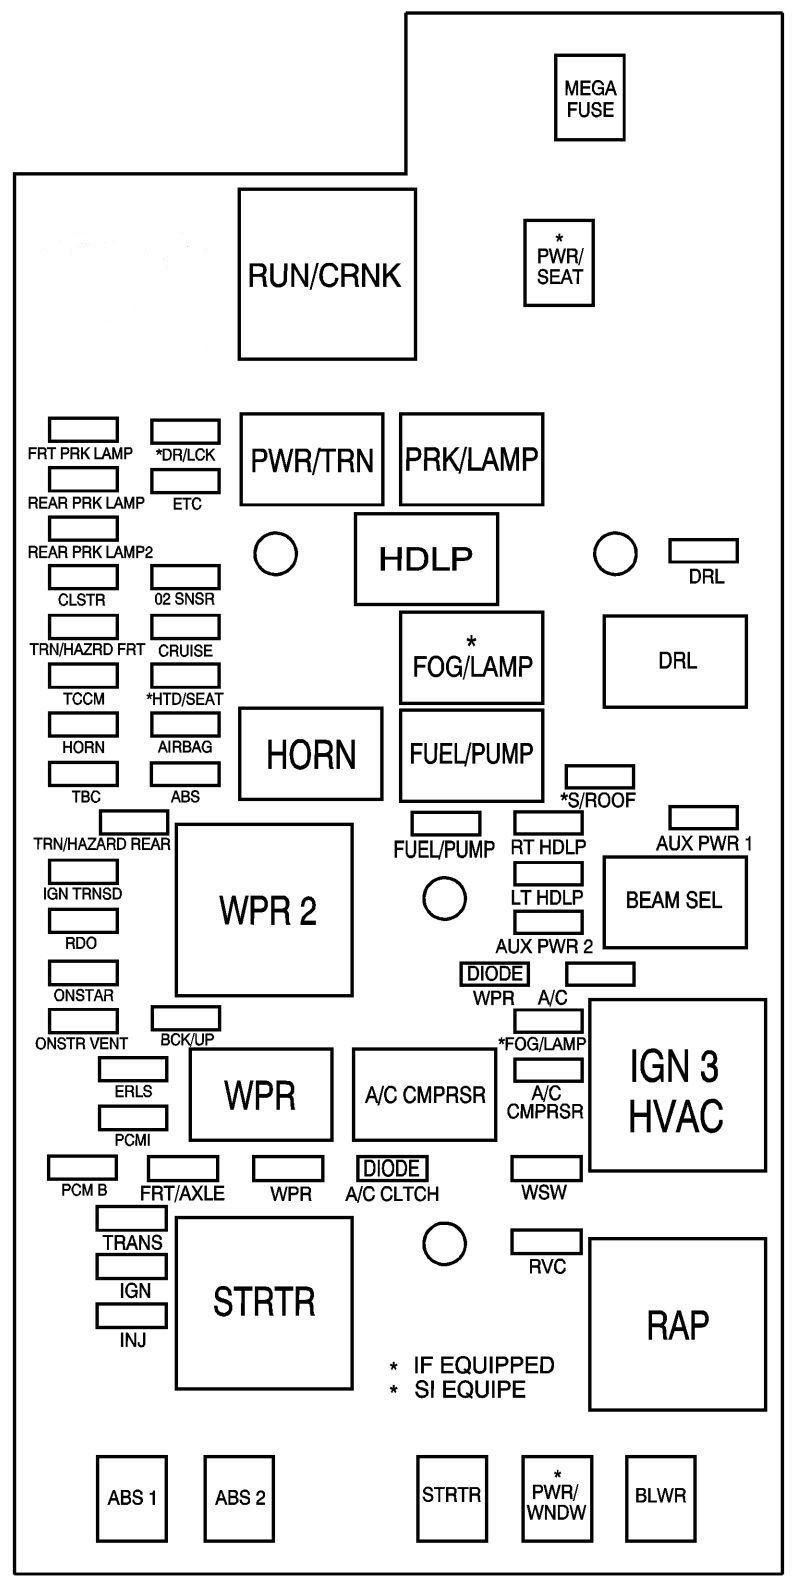 2000 Chevy Malibu Manual Fuse Diagram